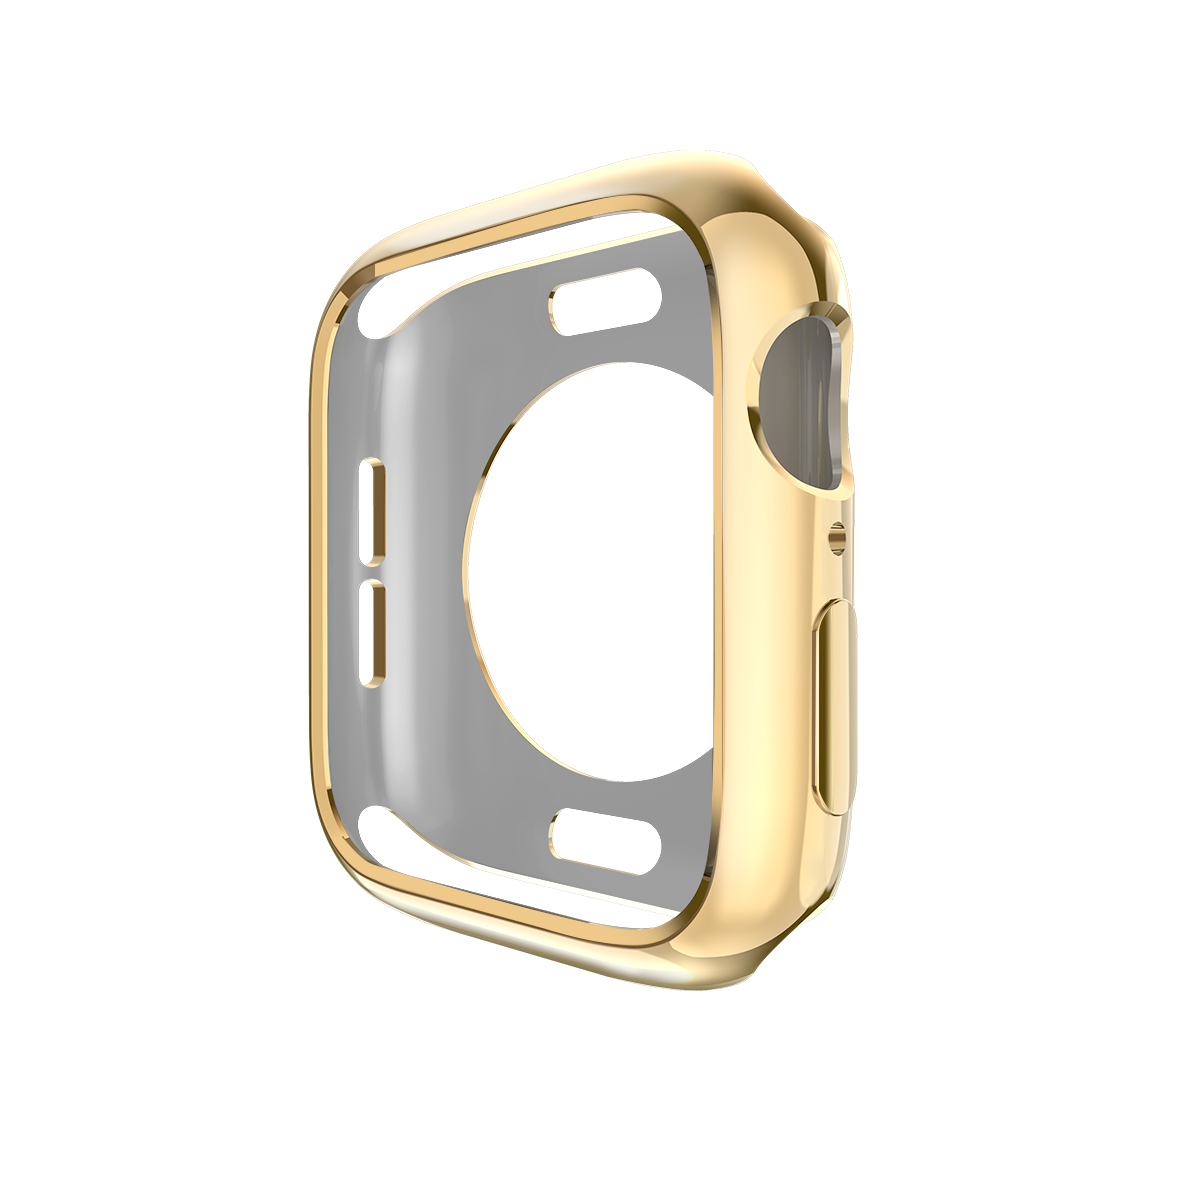 Watch cover Case for Apple Watch 4 5 40mm 44mm Scratch Half pack electroplating TPU cases For iWatch Series 3 2 42mm 38mm